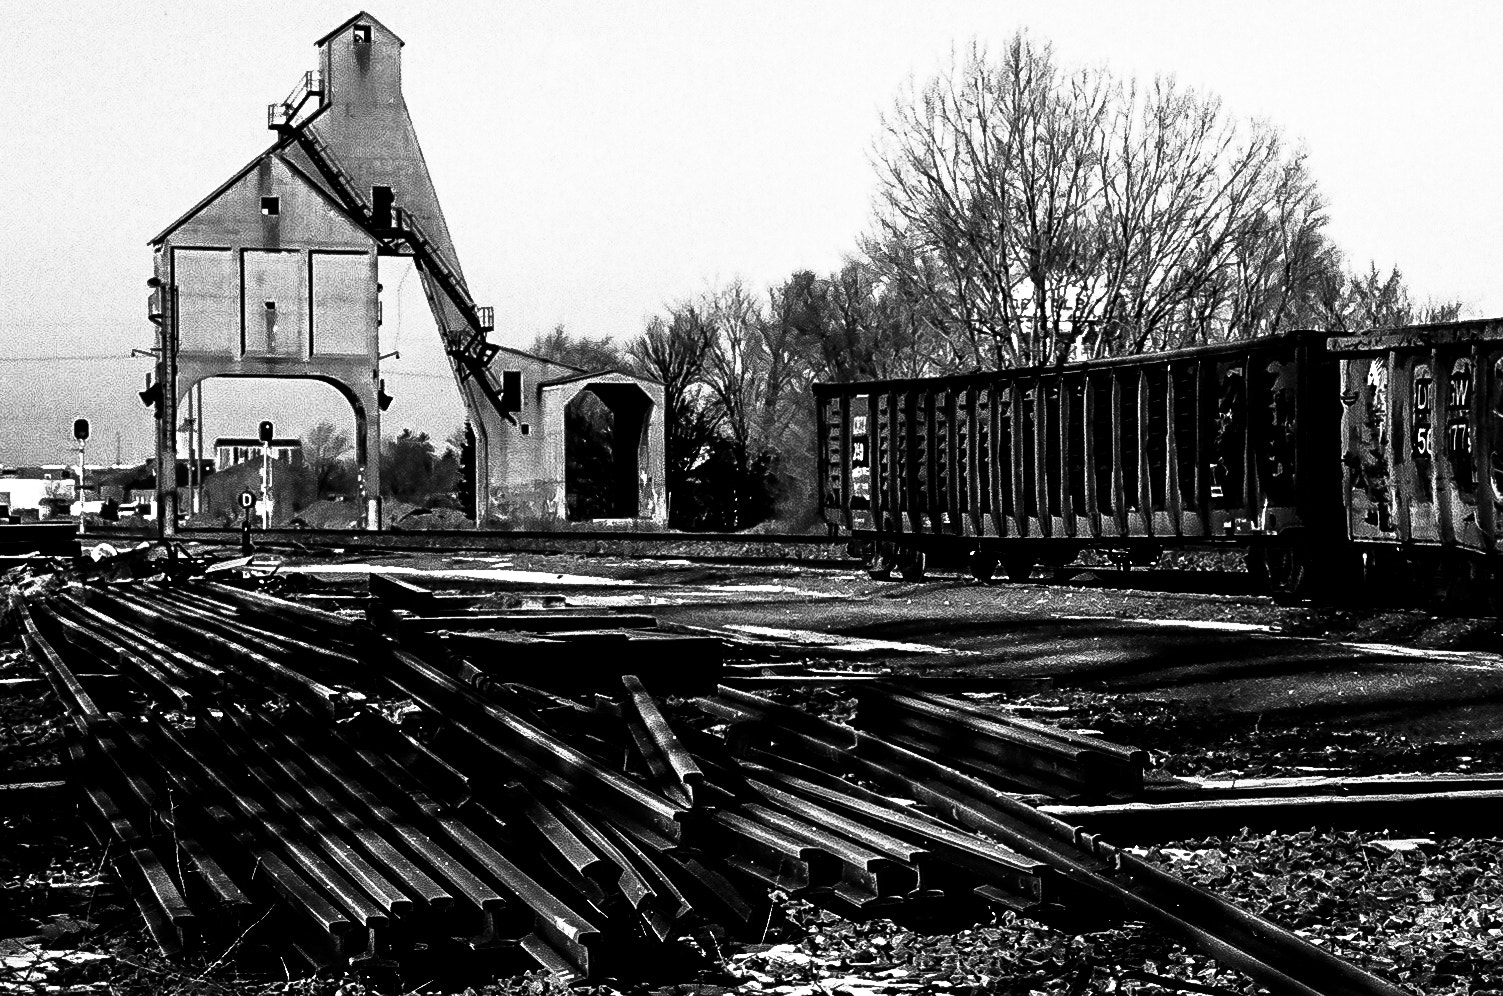 Photograph DeRailed in DeKalb v2 by PJ Resnick on 500px